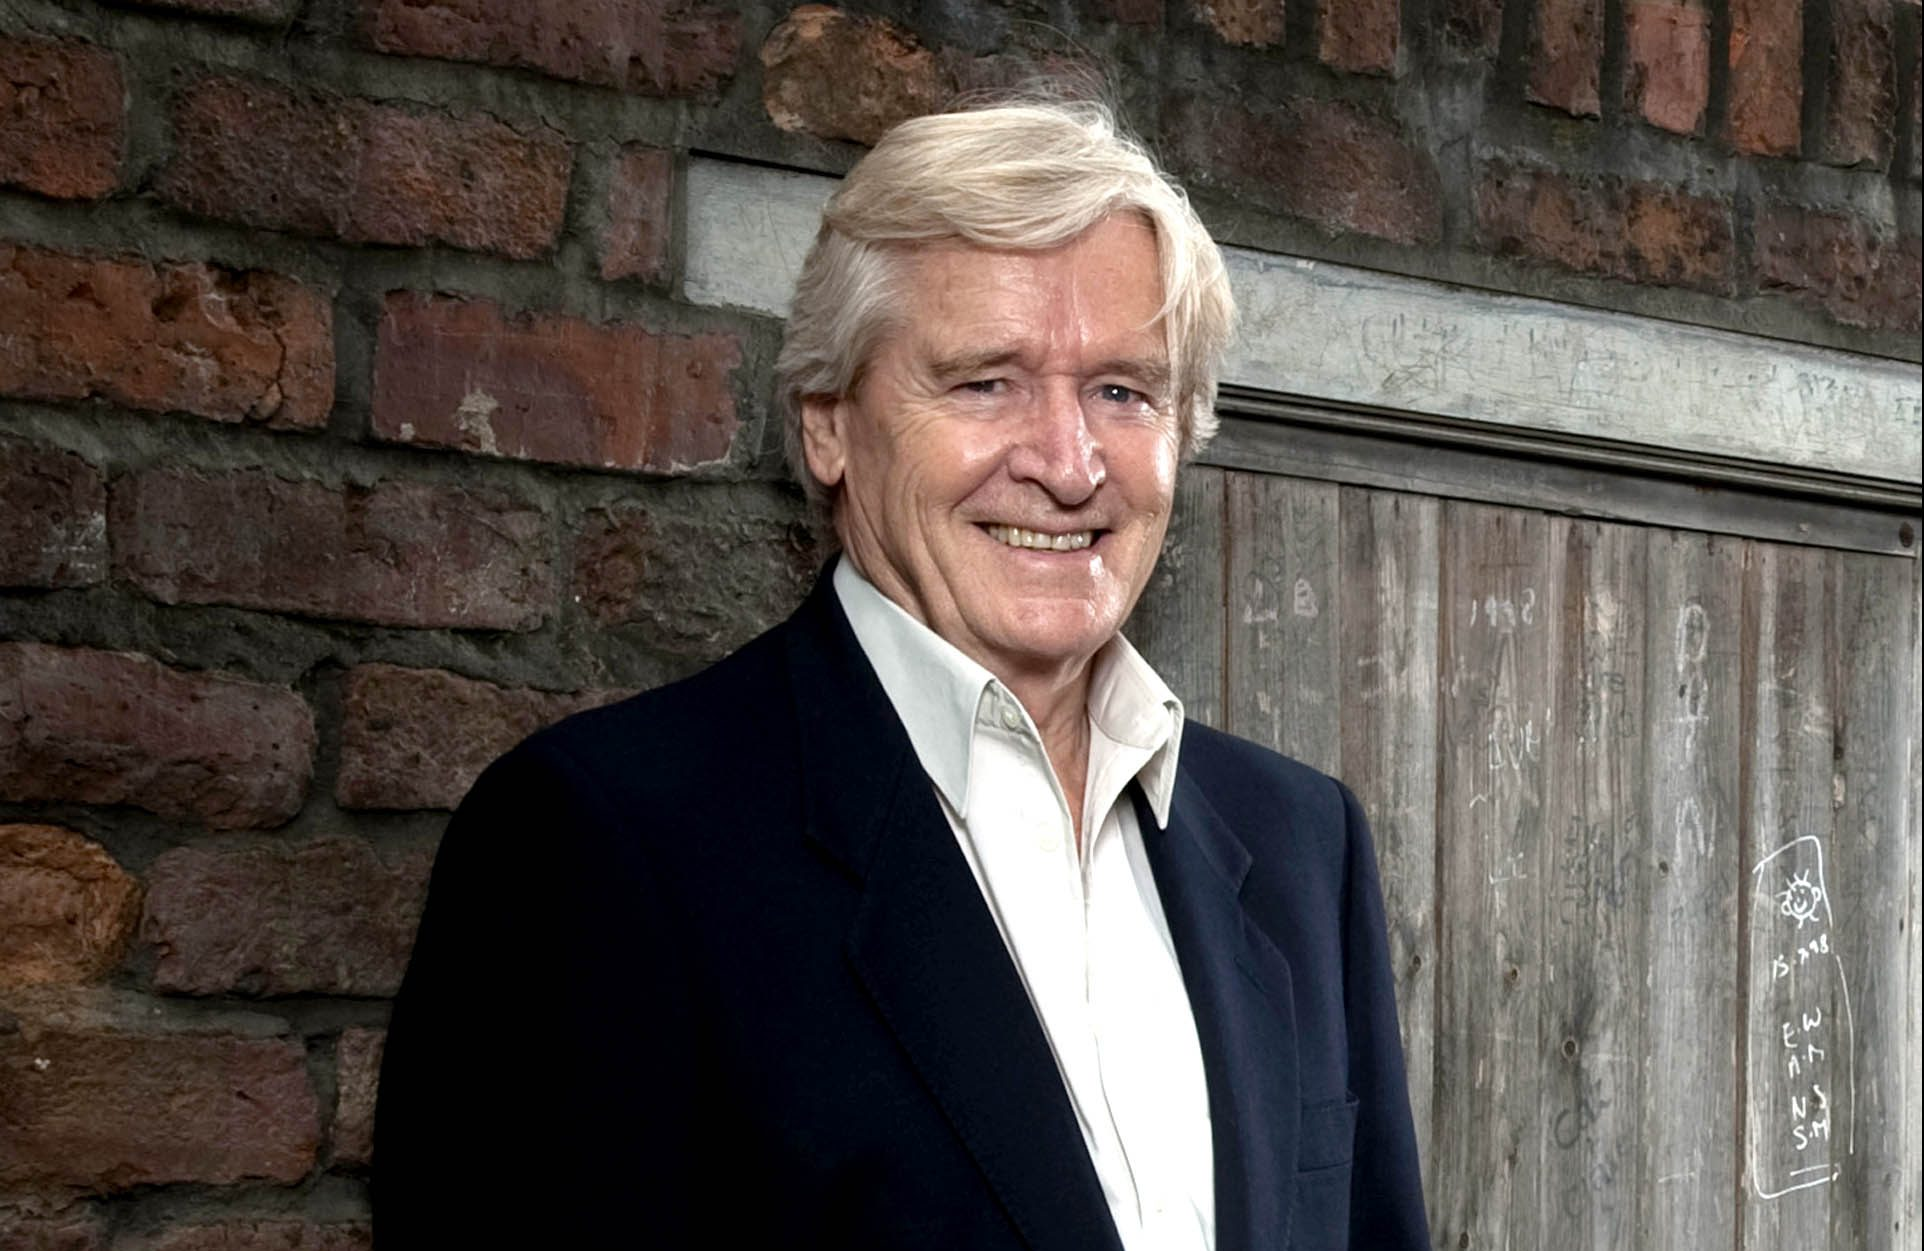 William Roache feared he was getting axed from Coronation Street after learning about Ken Barlow stroke storyline